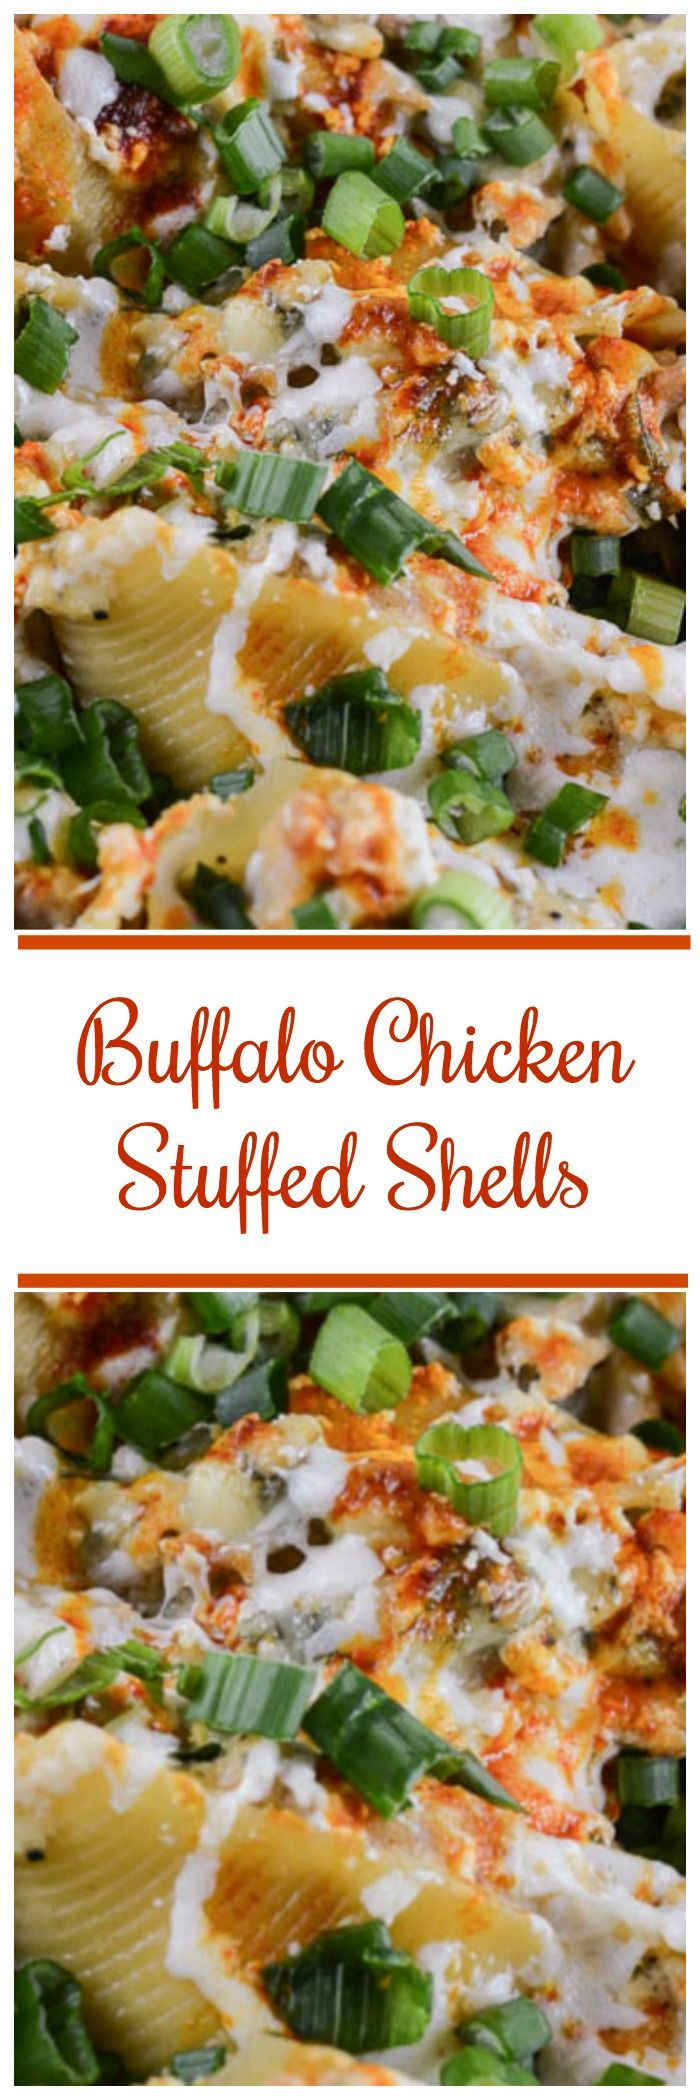 Buffalo Chicken Stuffed Shells combine the spicy flavor of buffalo chicken wings and the creamy, cheesy goodness of melted mozzarella, and salty blue cheese all stuffed into cute convenient pasta shells. ~ http://FlavorMosaic.com